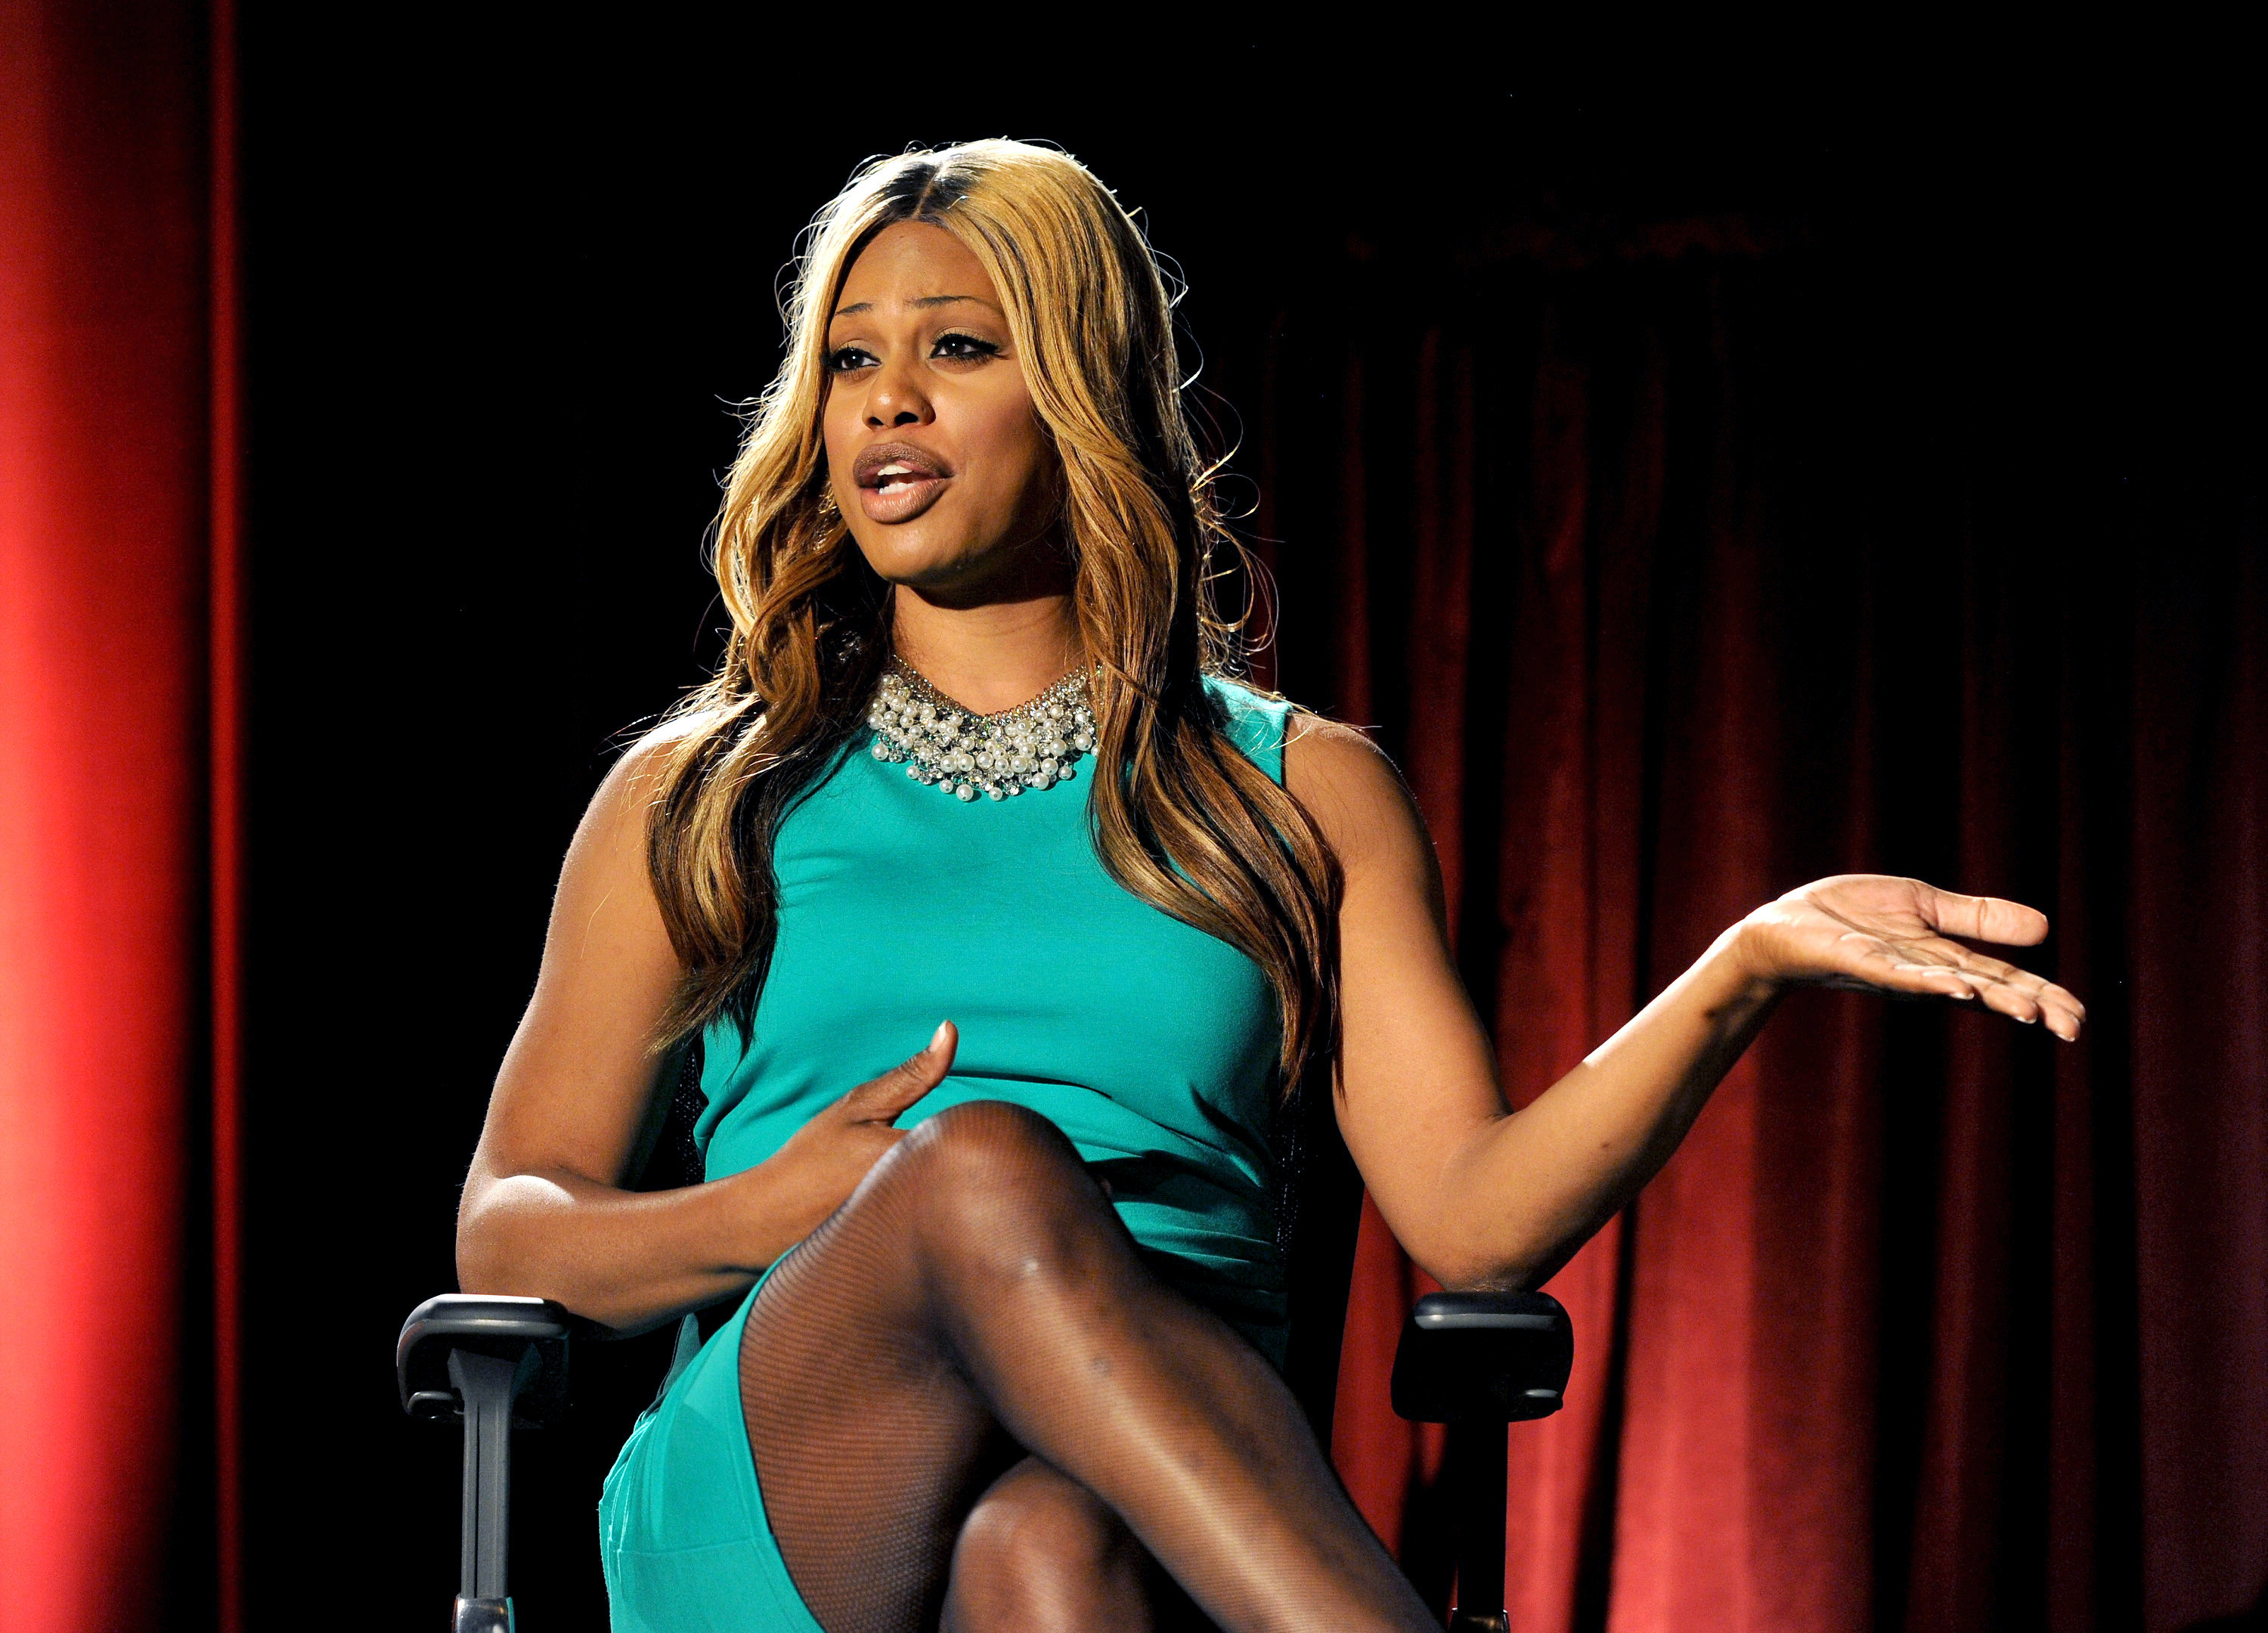 Actor Laverne Cox participates in the Academy of Television Arts & Sciences Presents 10 Years After  The Prime Time Closet - A History Of Gays And Lesbians On TV  panel, on Monday, October 28, 2013, at the Leonard H. Goldenson Theatre in North Hollywood, Calif. (Photo by Frank Micelotta/Invision for Academy of Television Arts & Sciences/AP Images)